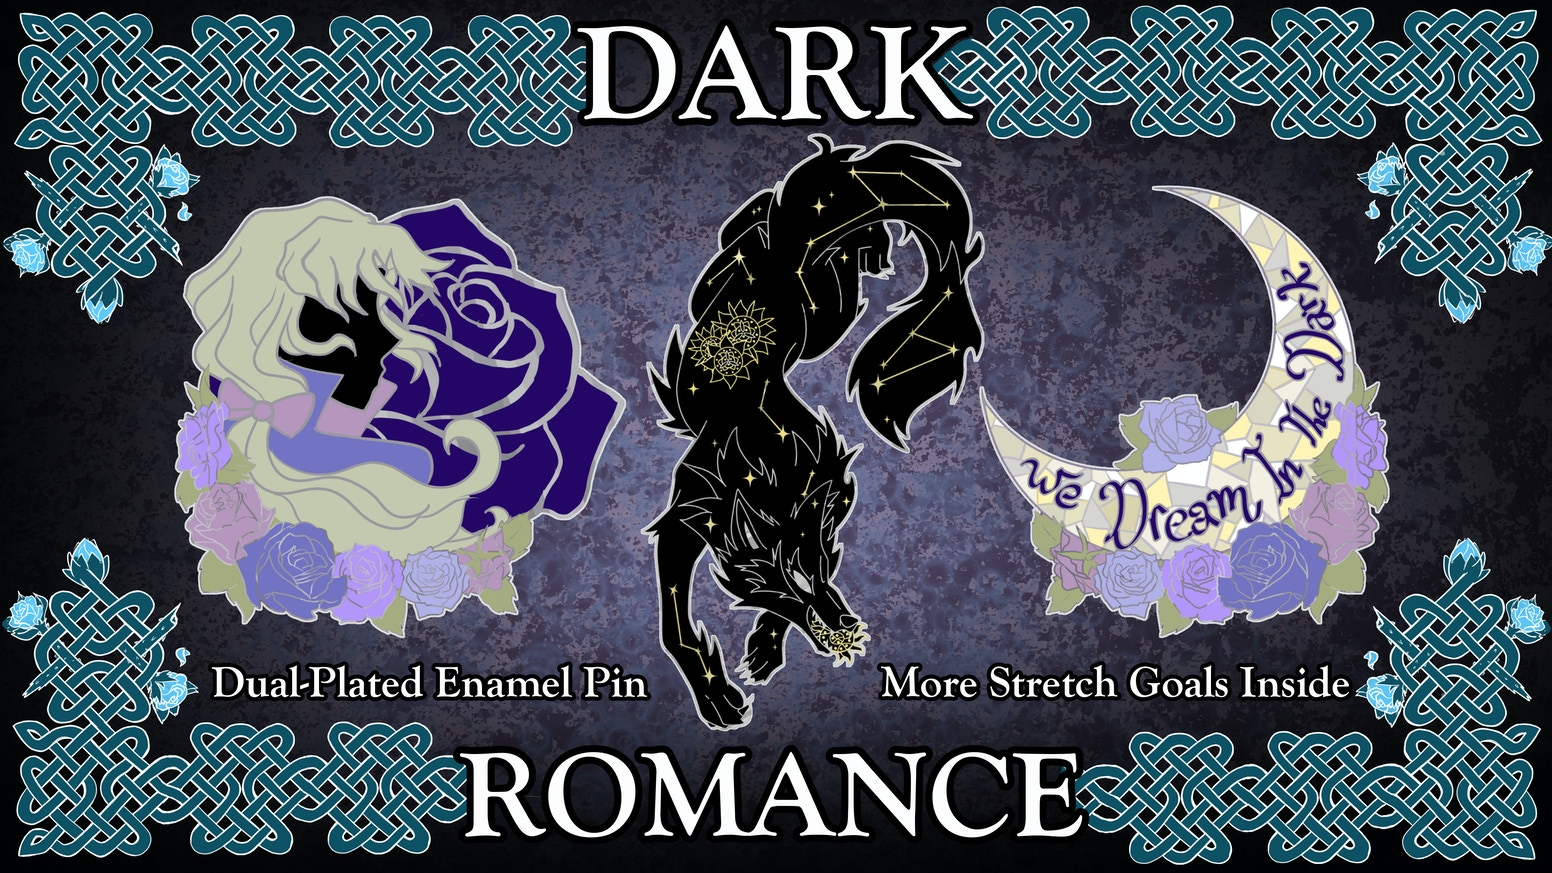 A romantic enamel pin set of moonlight, roses, and all the creatures of the night.